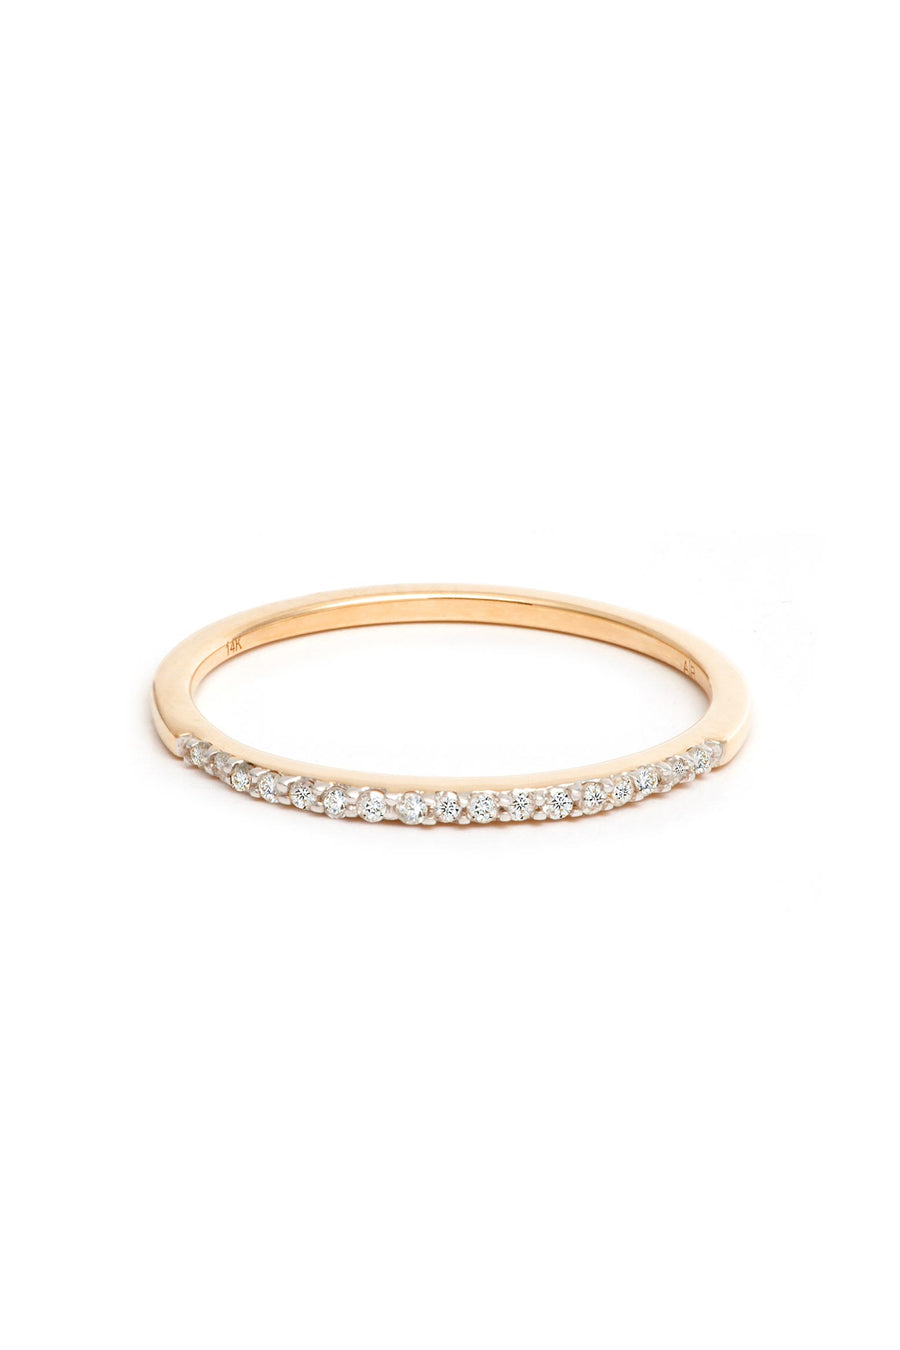 PAVE BAND RING Y14